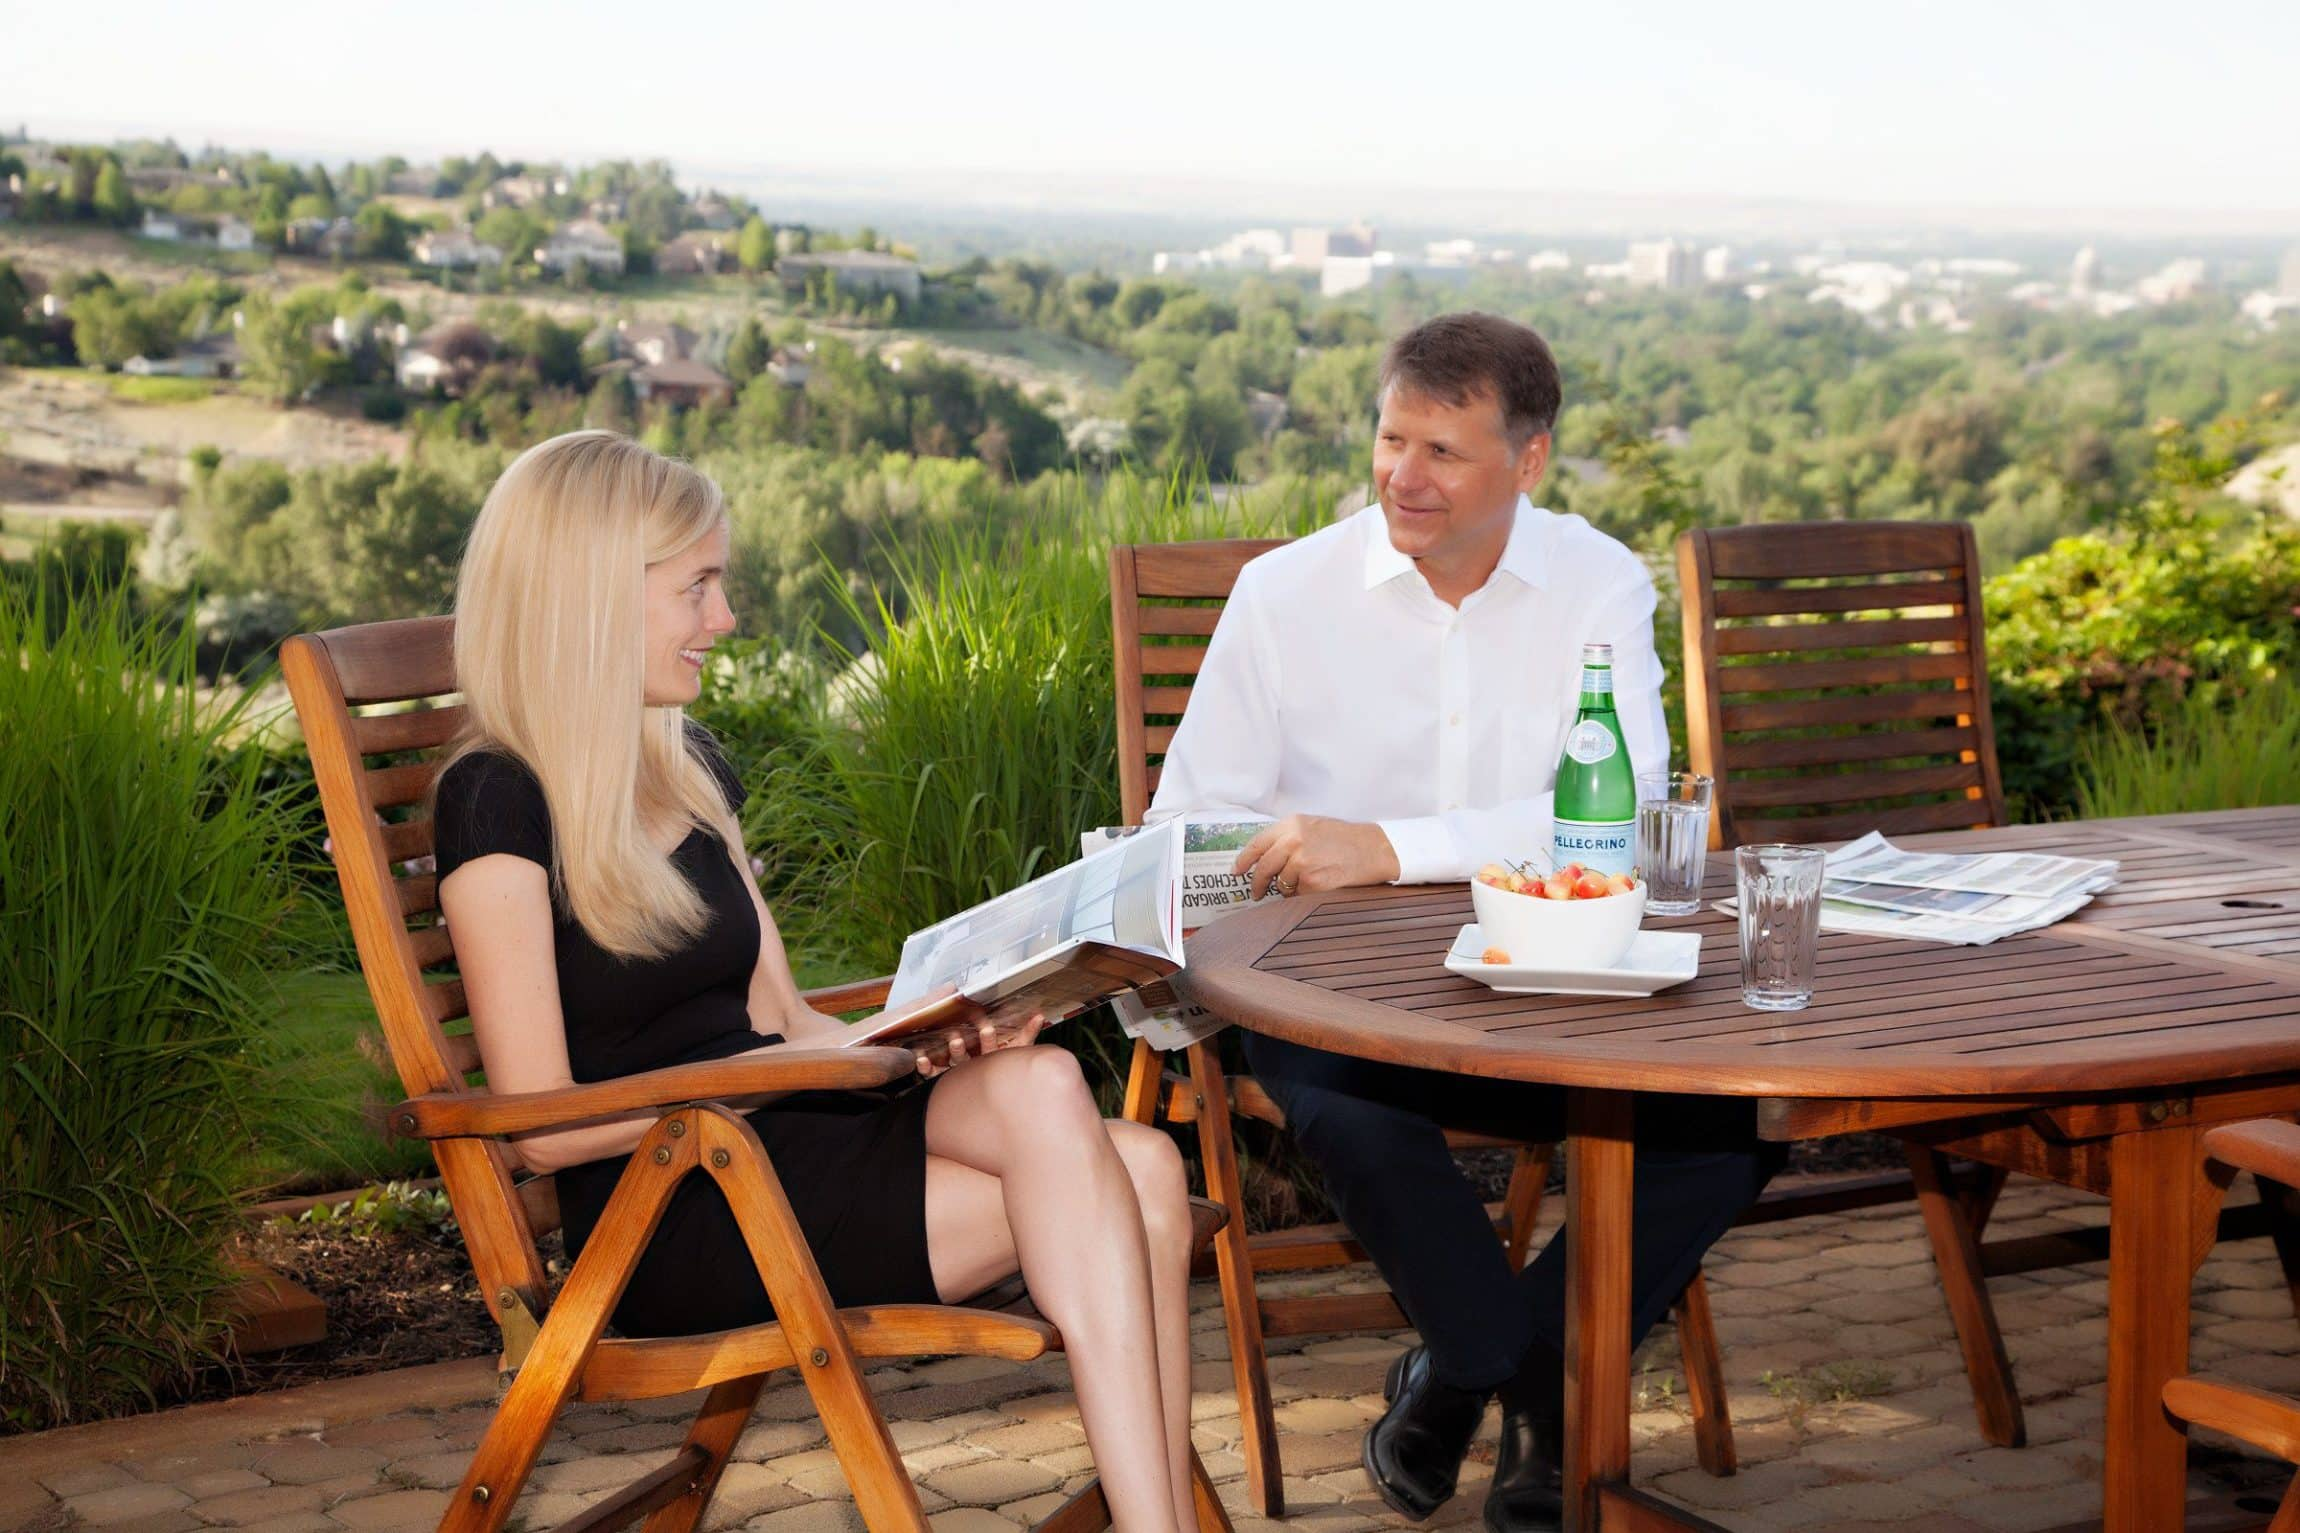 Man and woman sitting at outdoor table